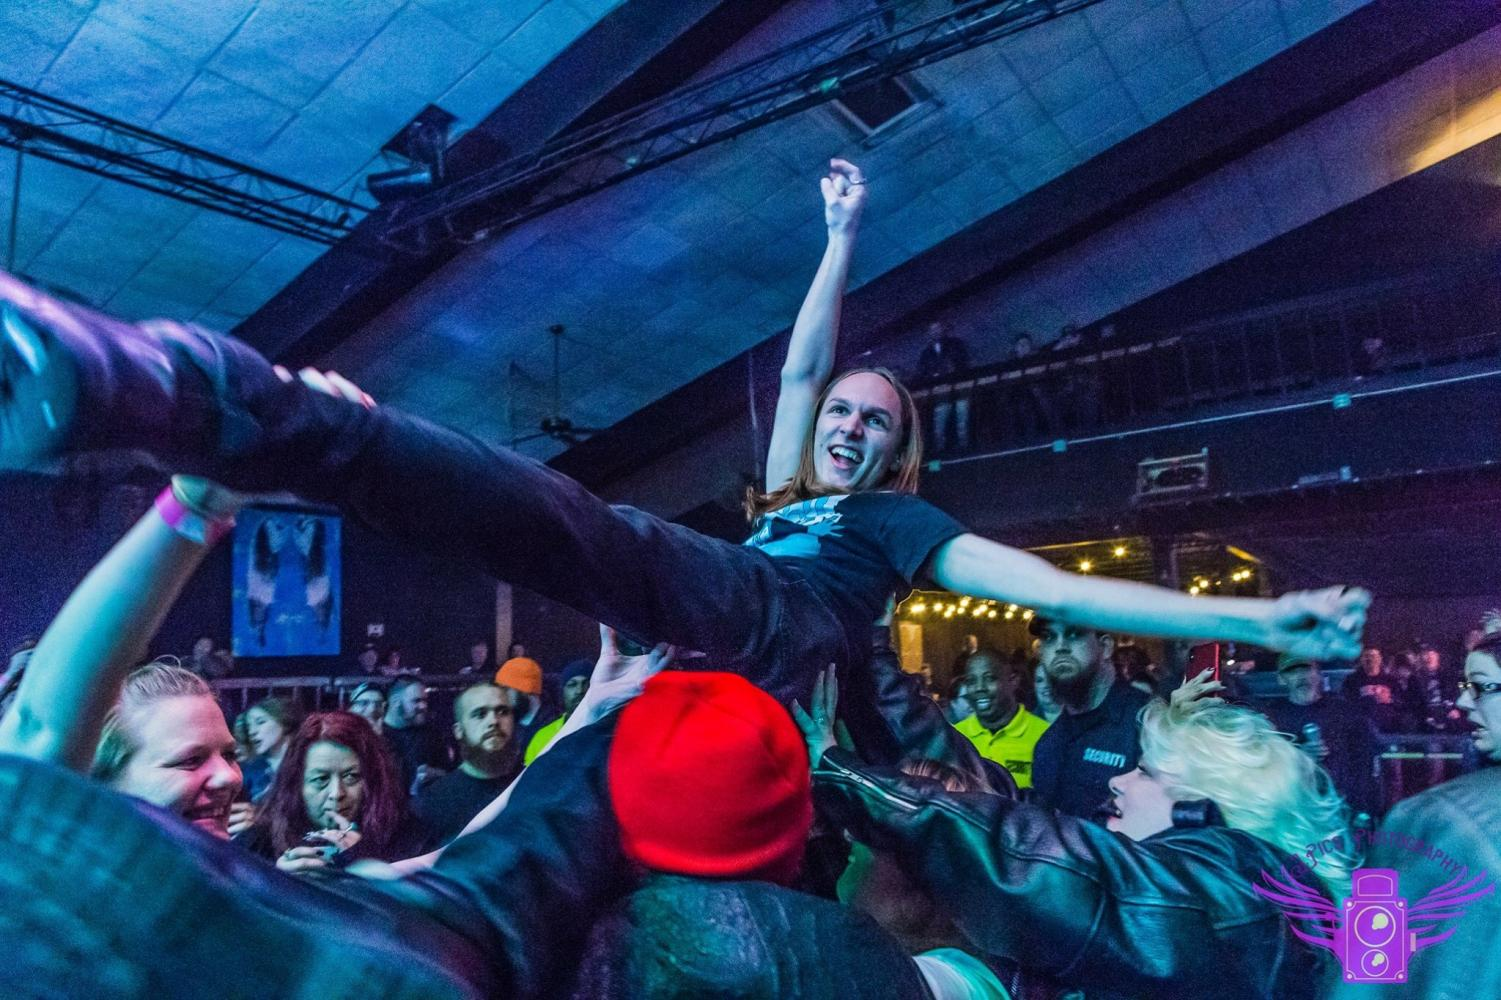 Lincoln High musician Will Gades (12) gets a little wild, as well as very trusting, during one of his shows and surfs the crowd of an overflowing venue. This is a regular occurrence for his shows.